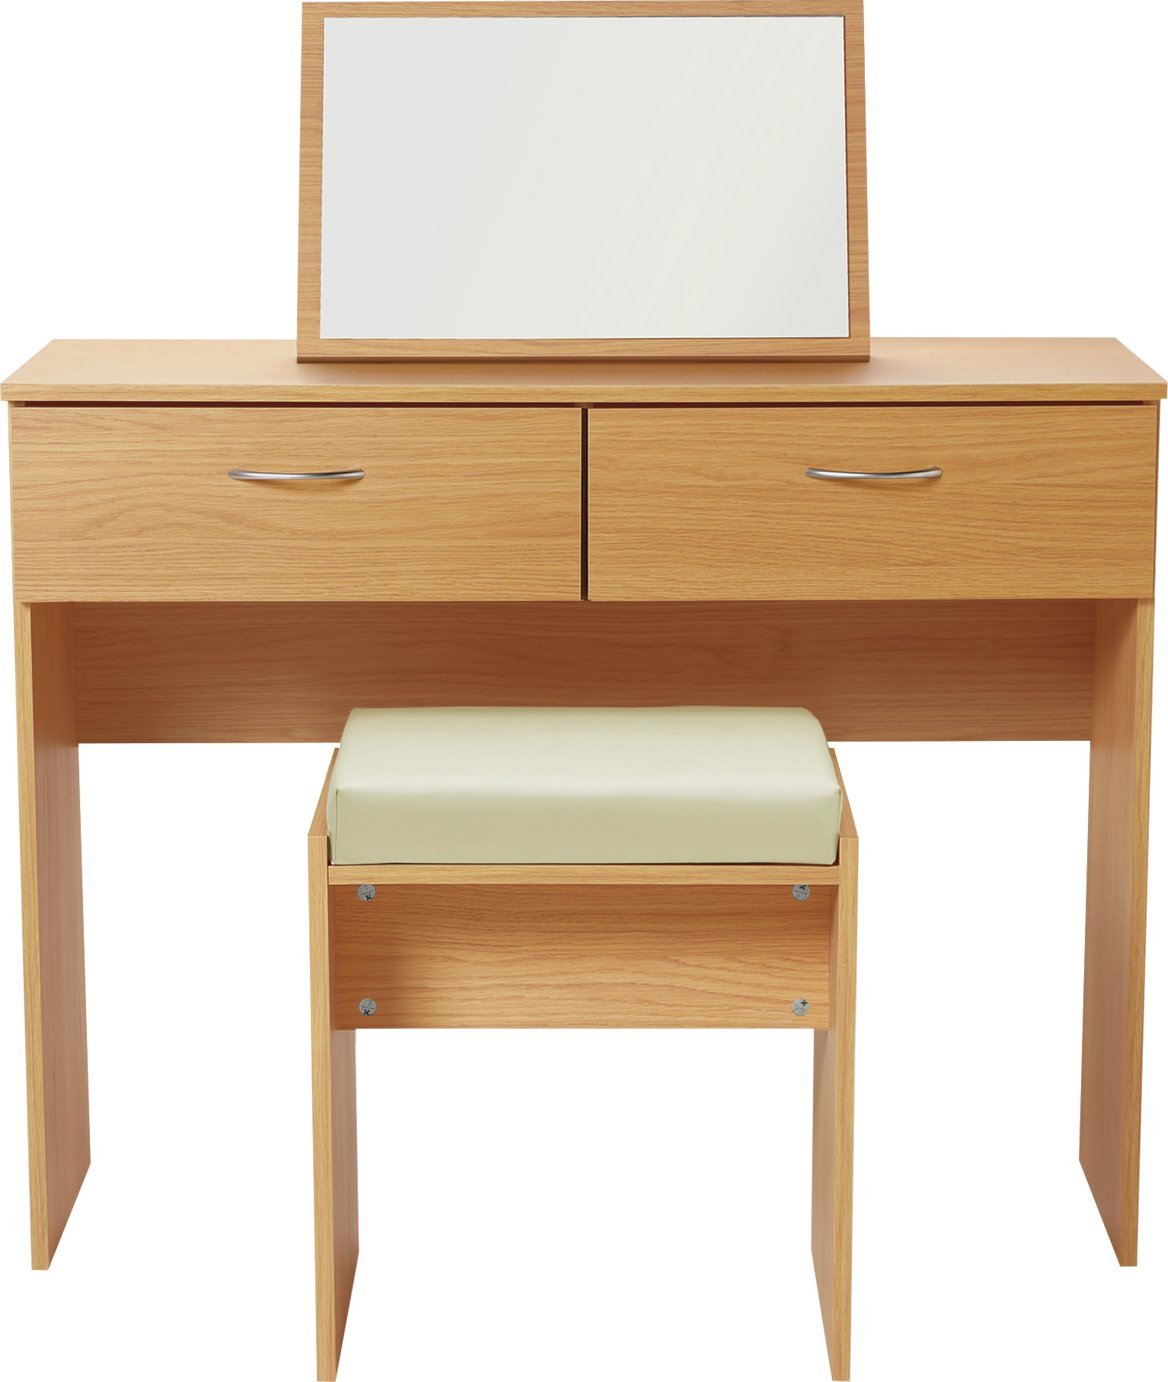 Argos Home Cheval Dressing Table Stool & Mirror - Beech Eff